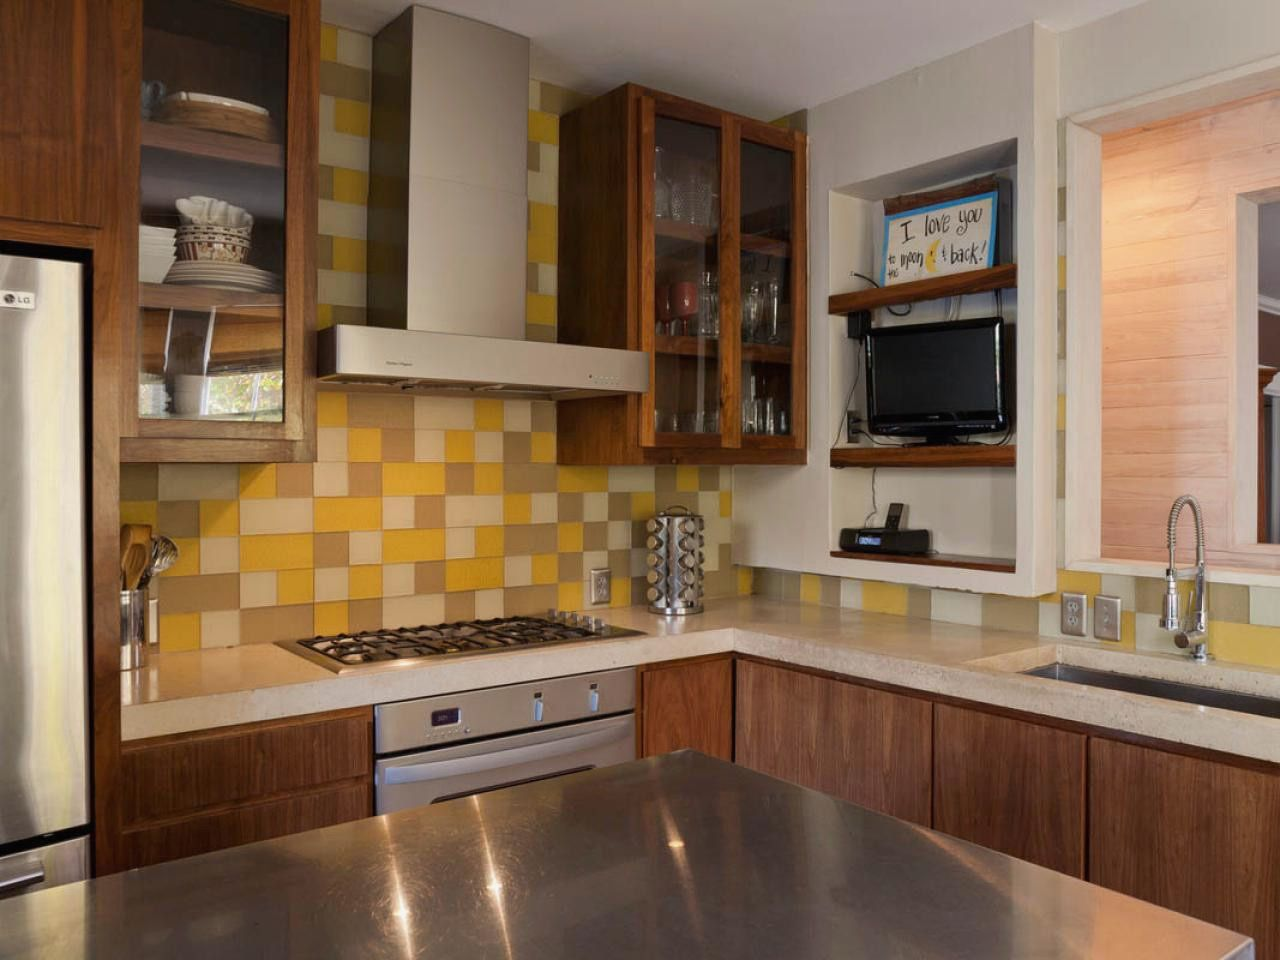 20 Can You Paint Veneer Kitchen Cabinets Design Ideas For Small